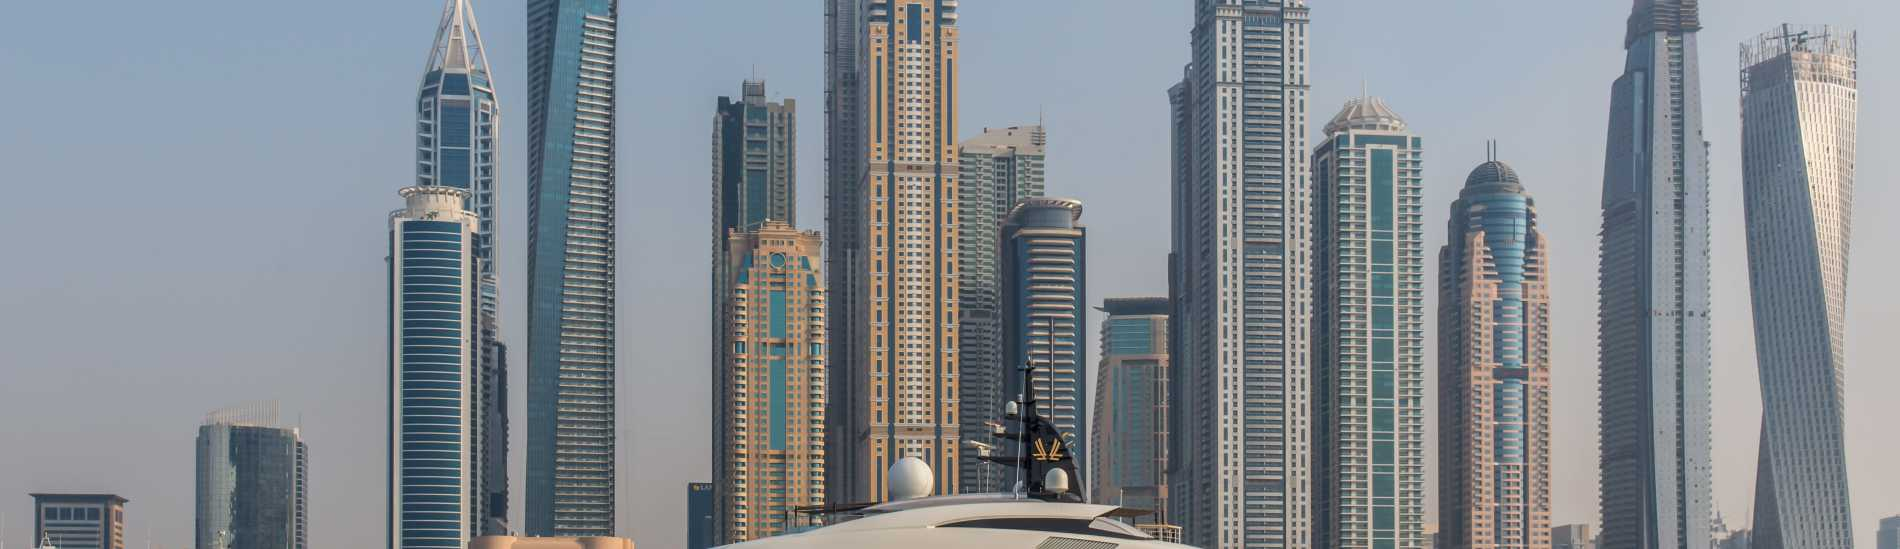 8 Reasons To Invest in Dubai